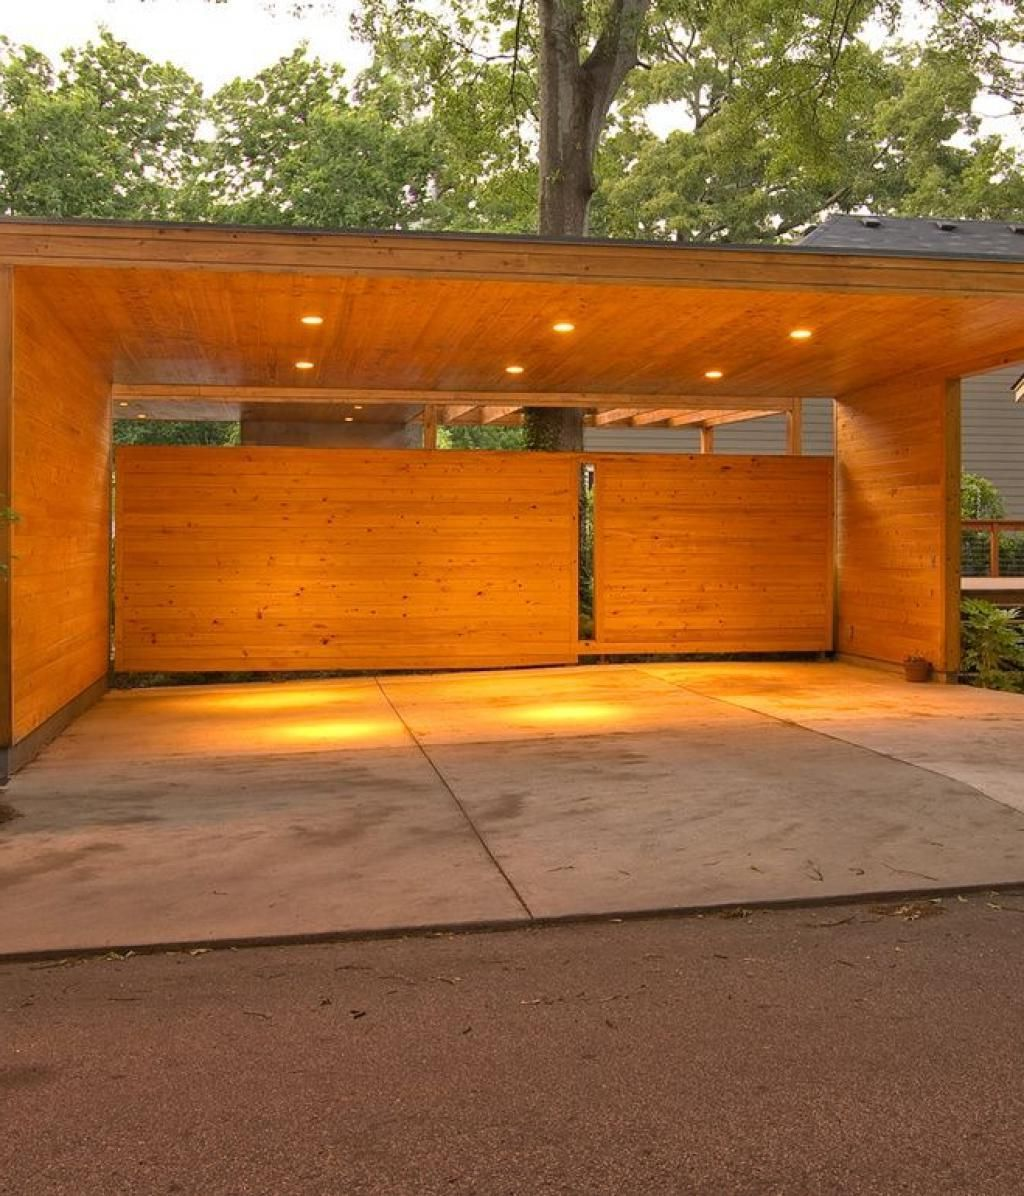 Impresive Design Carport Area With Wooden Design Material With Warm Lighting Carport What To Consider When Choosing Carp Modern Carport Carport Designs Carport